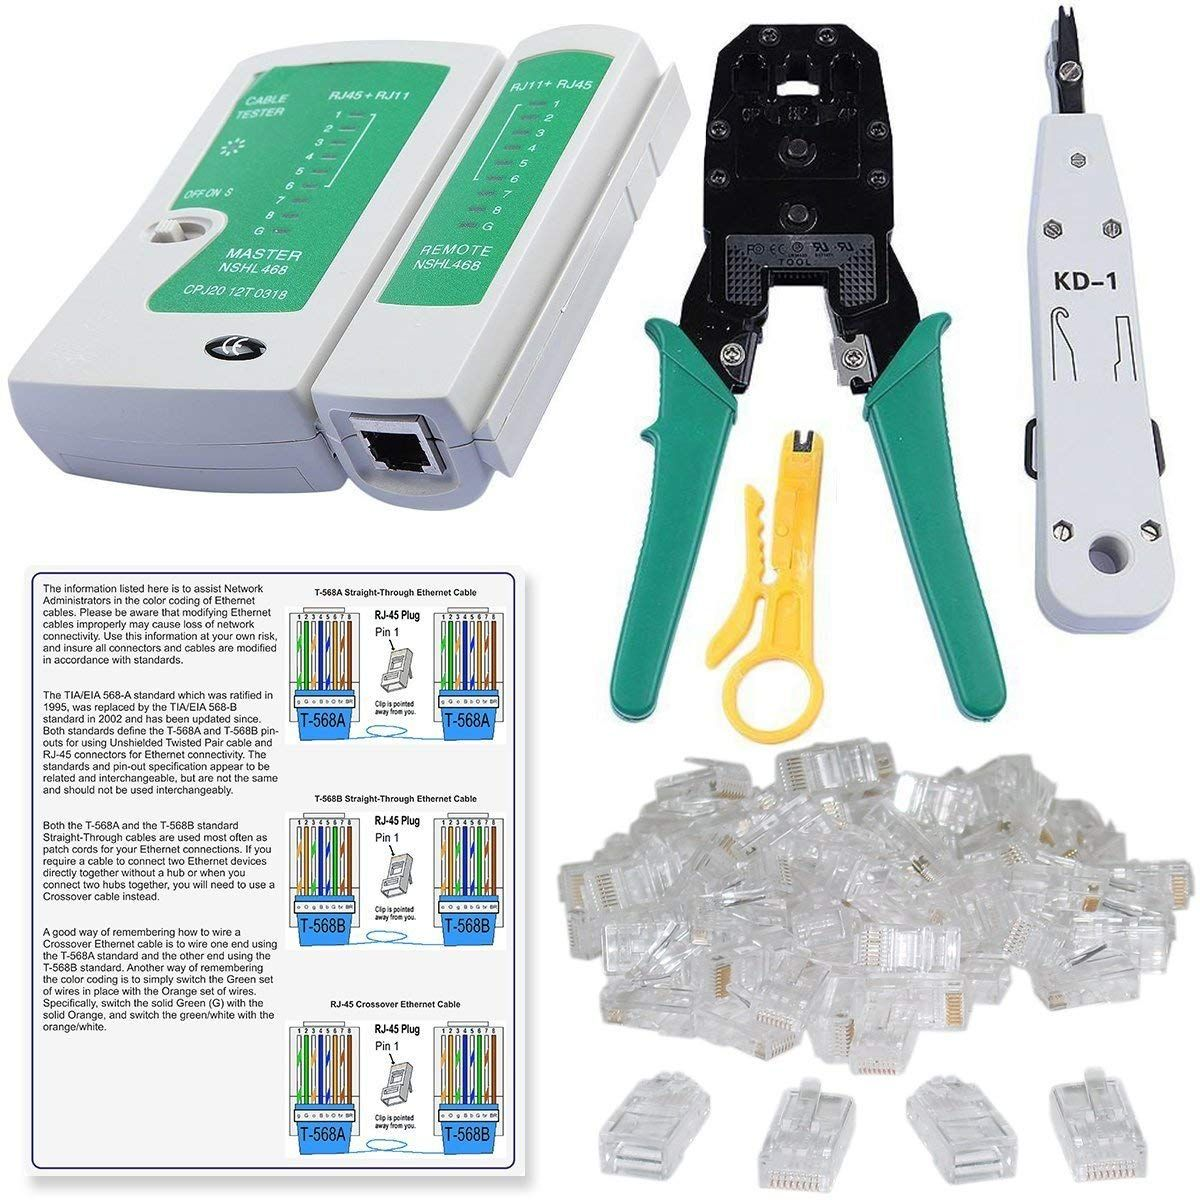 small resolution of shopee rj45 rj11 crimping tool kd 1 professional punch down lan cable tester ethernet colour coding and 20 pieces connectors combo set